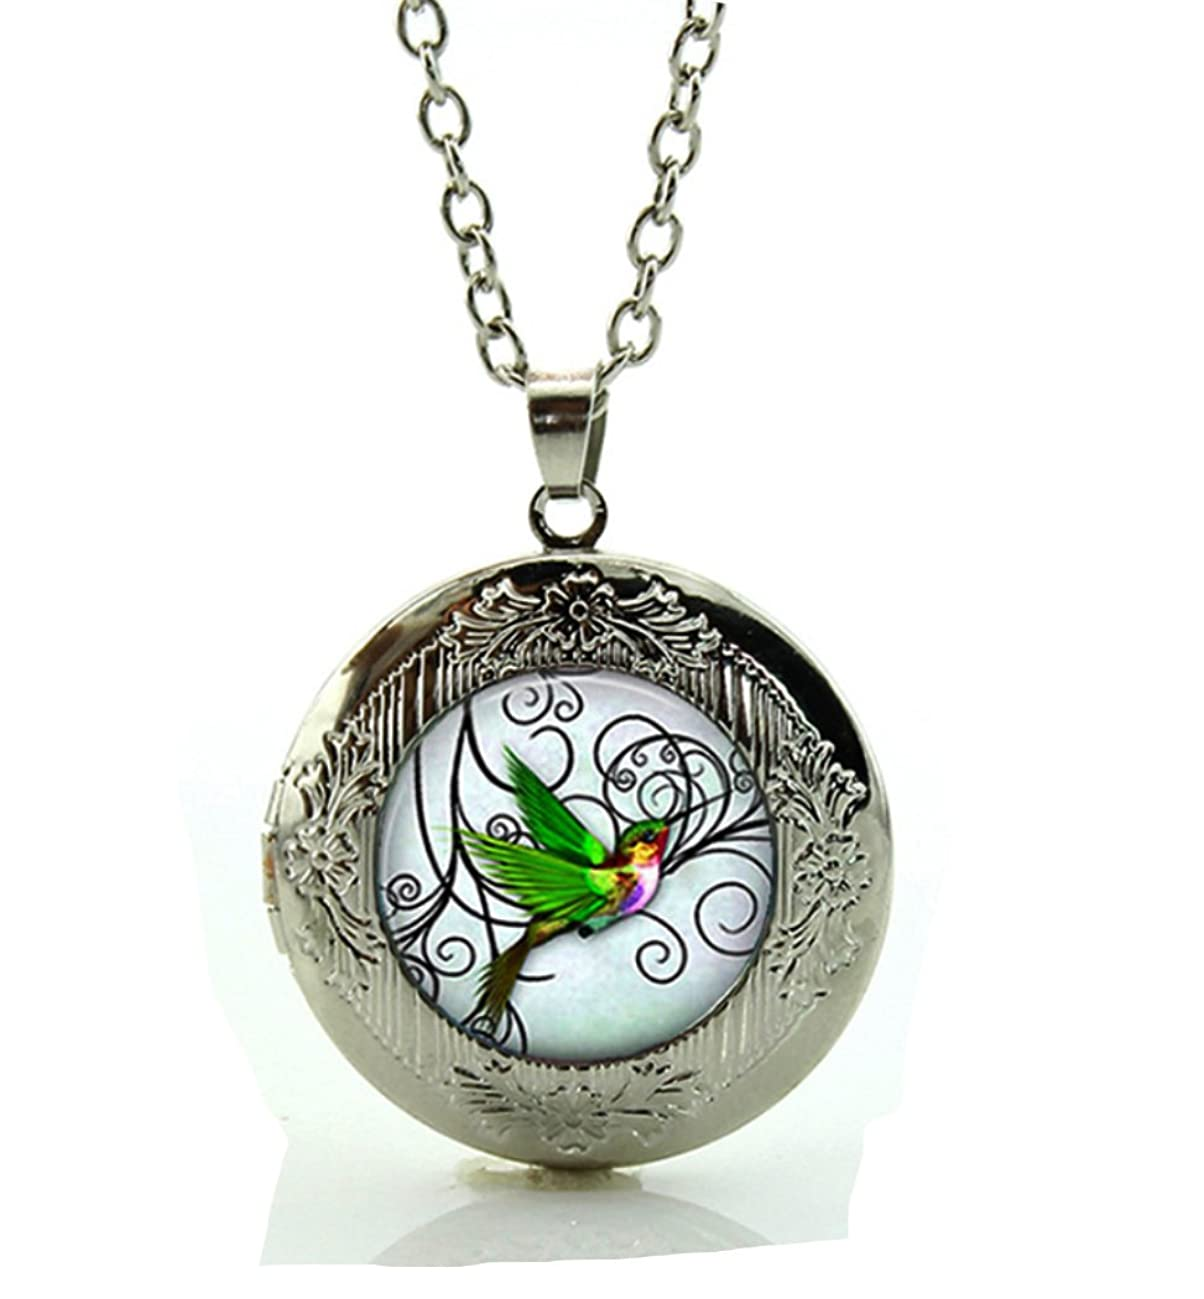 DianaL Boutique Silver Tone Hummingbird Locket Bird Pendant Necklace with a Gift Box